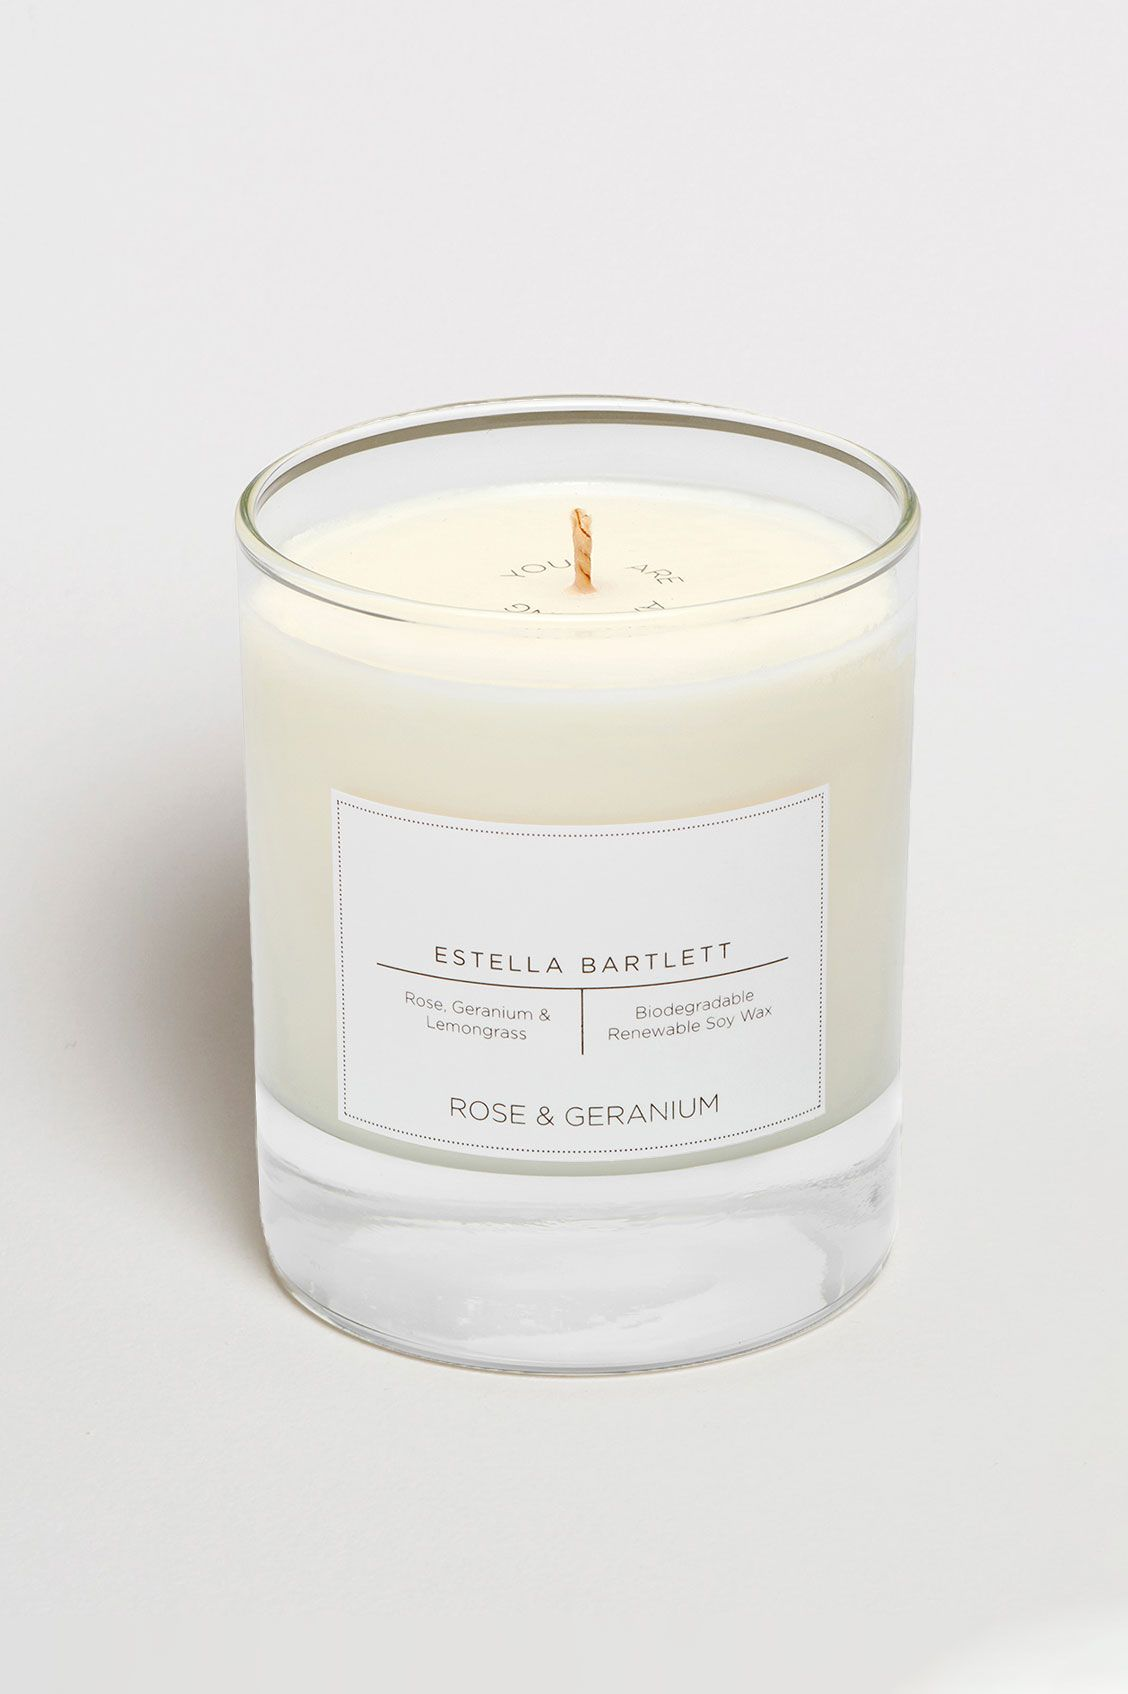 Estella Bartlett Rose & Geranium Soy Candle